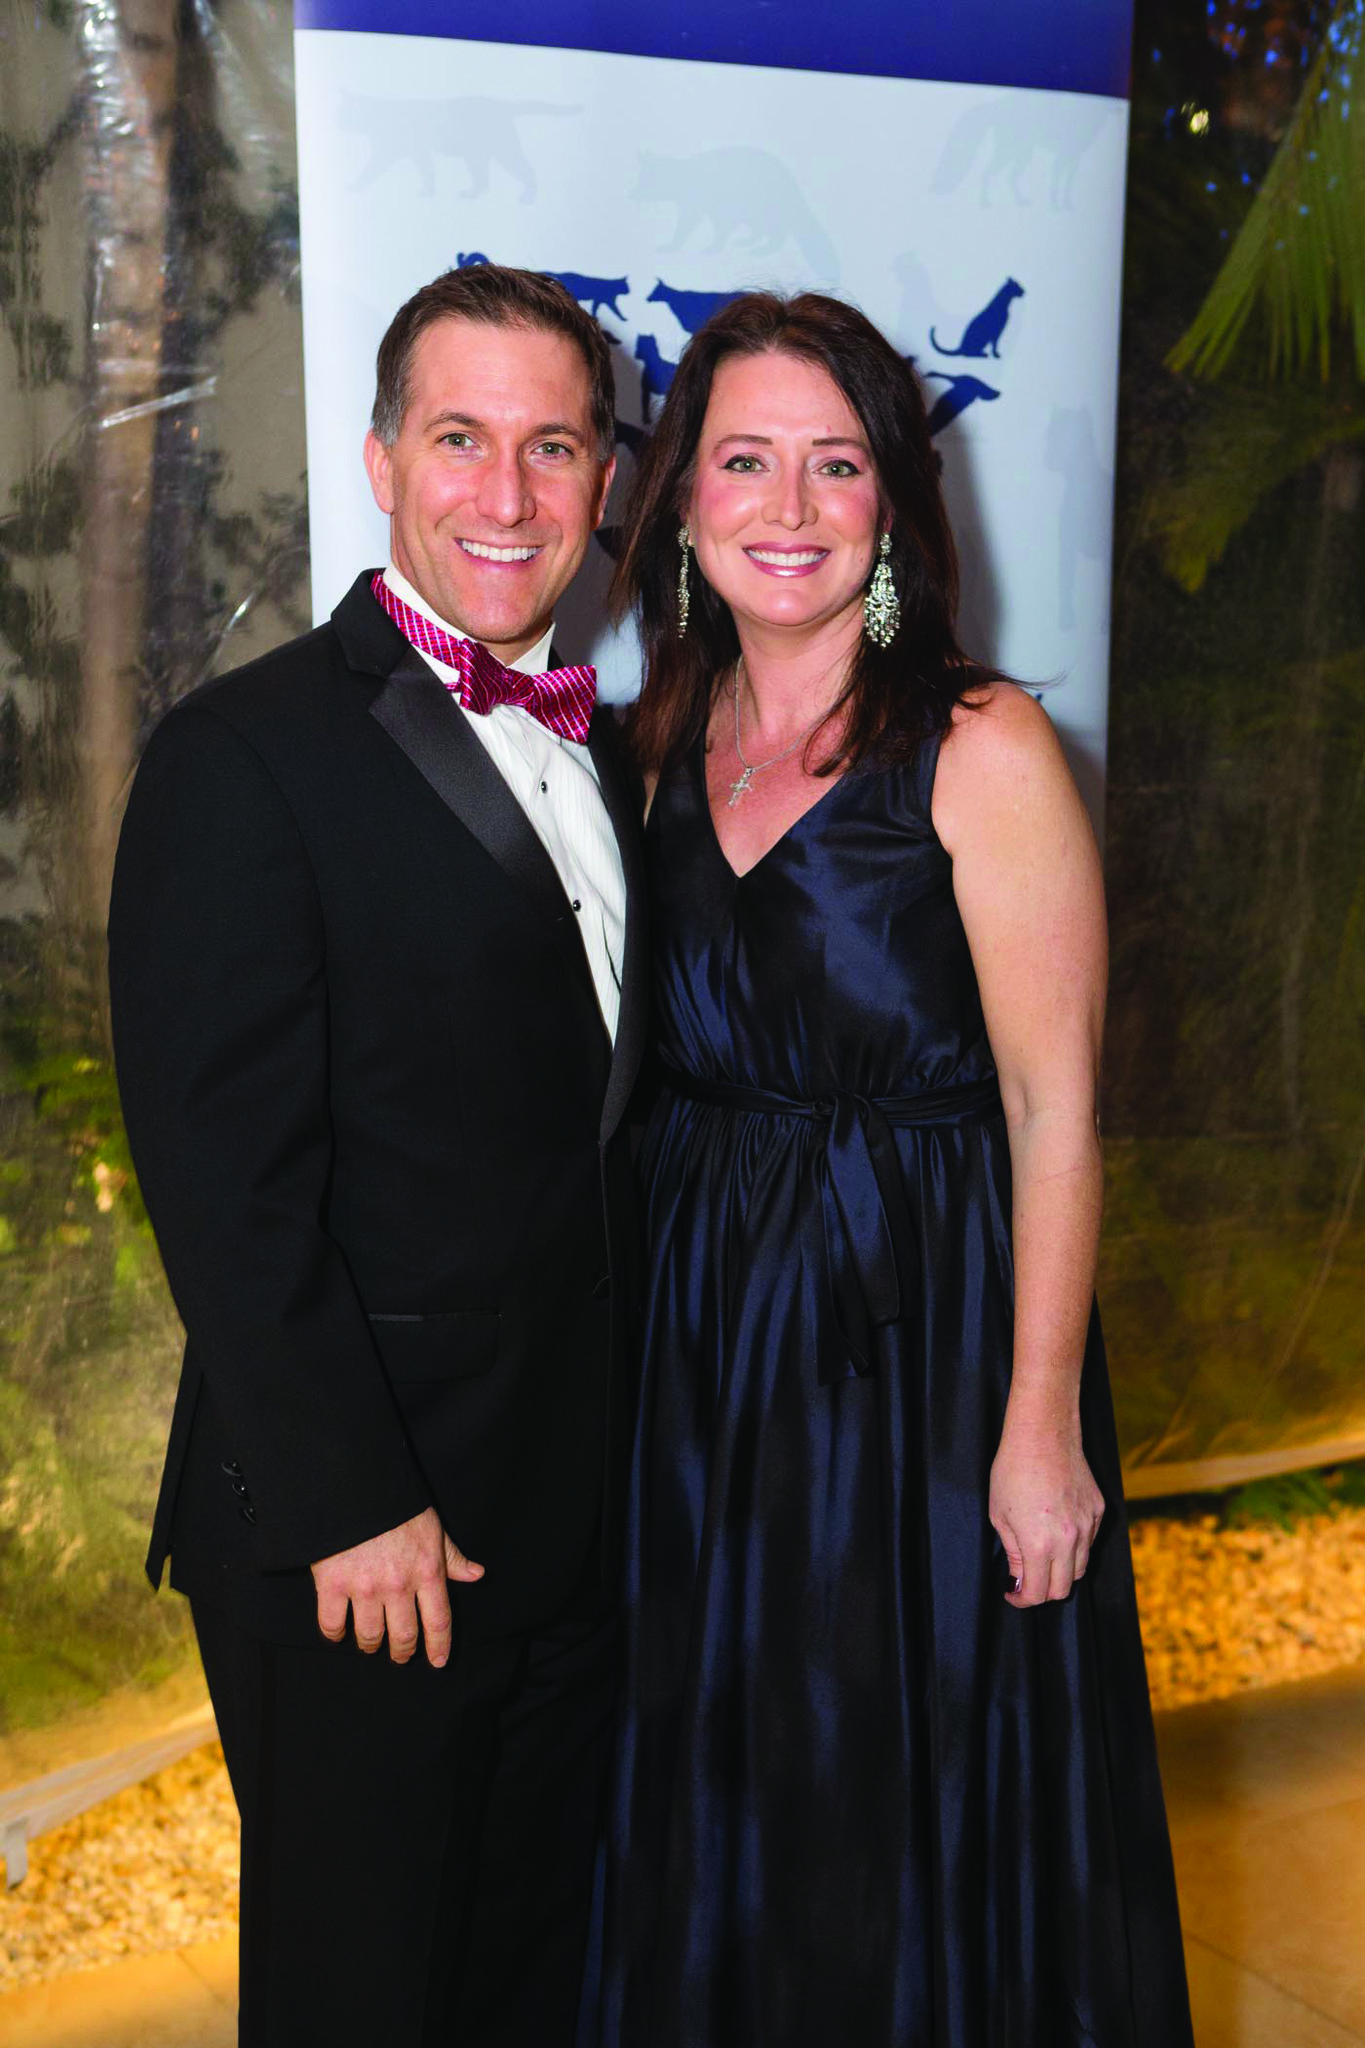 Society Scene photos - Palm Beach County State Attorney Dave Aronberg, left, and Terri Mersentes dazzled in formal wear for The Humane Society of the United States